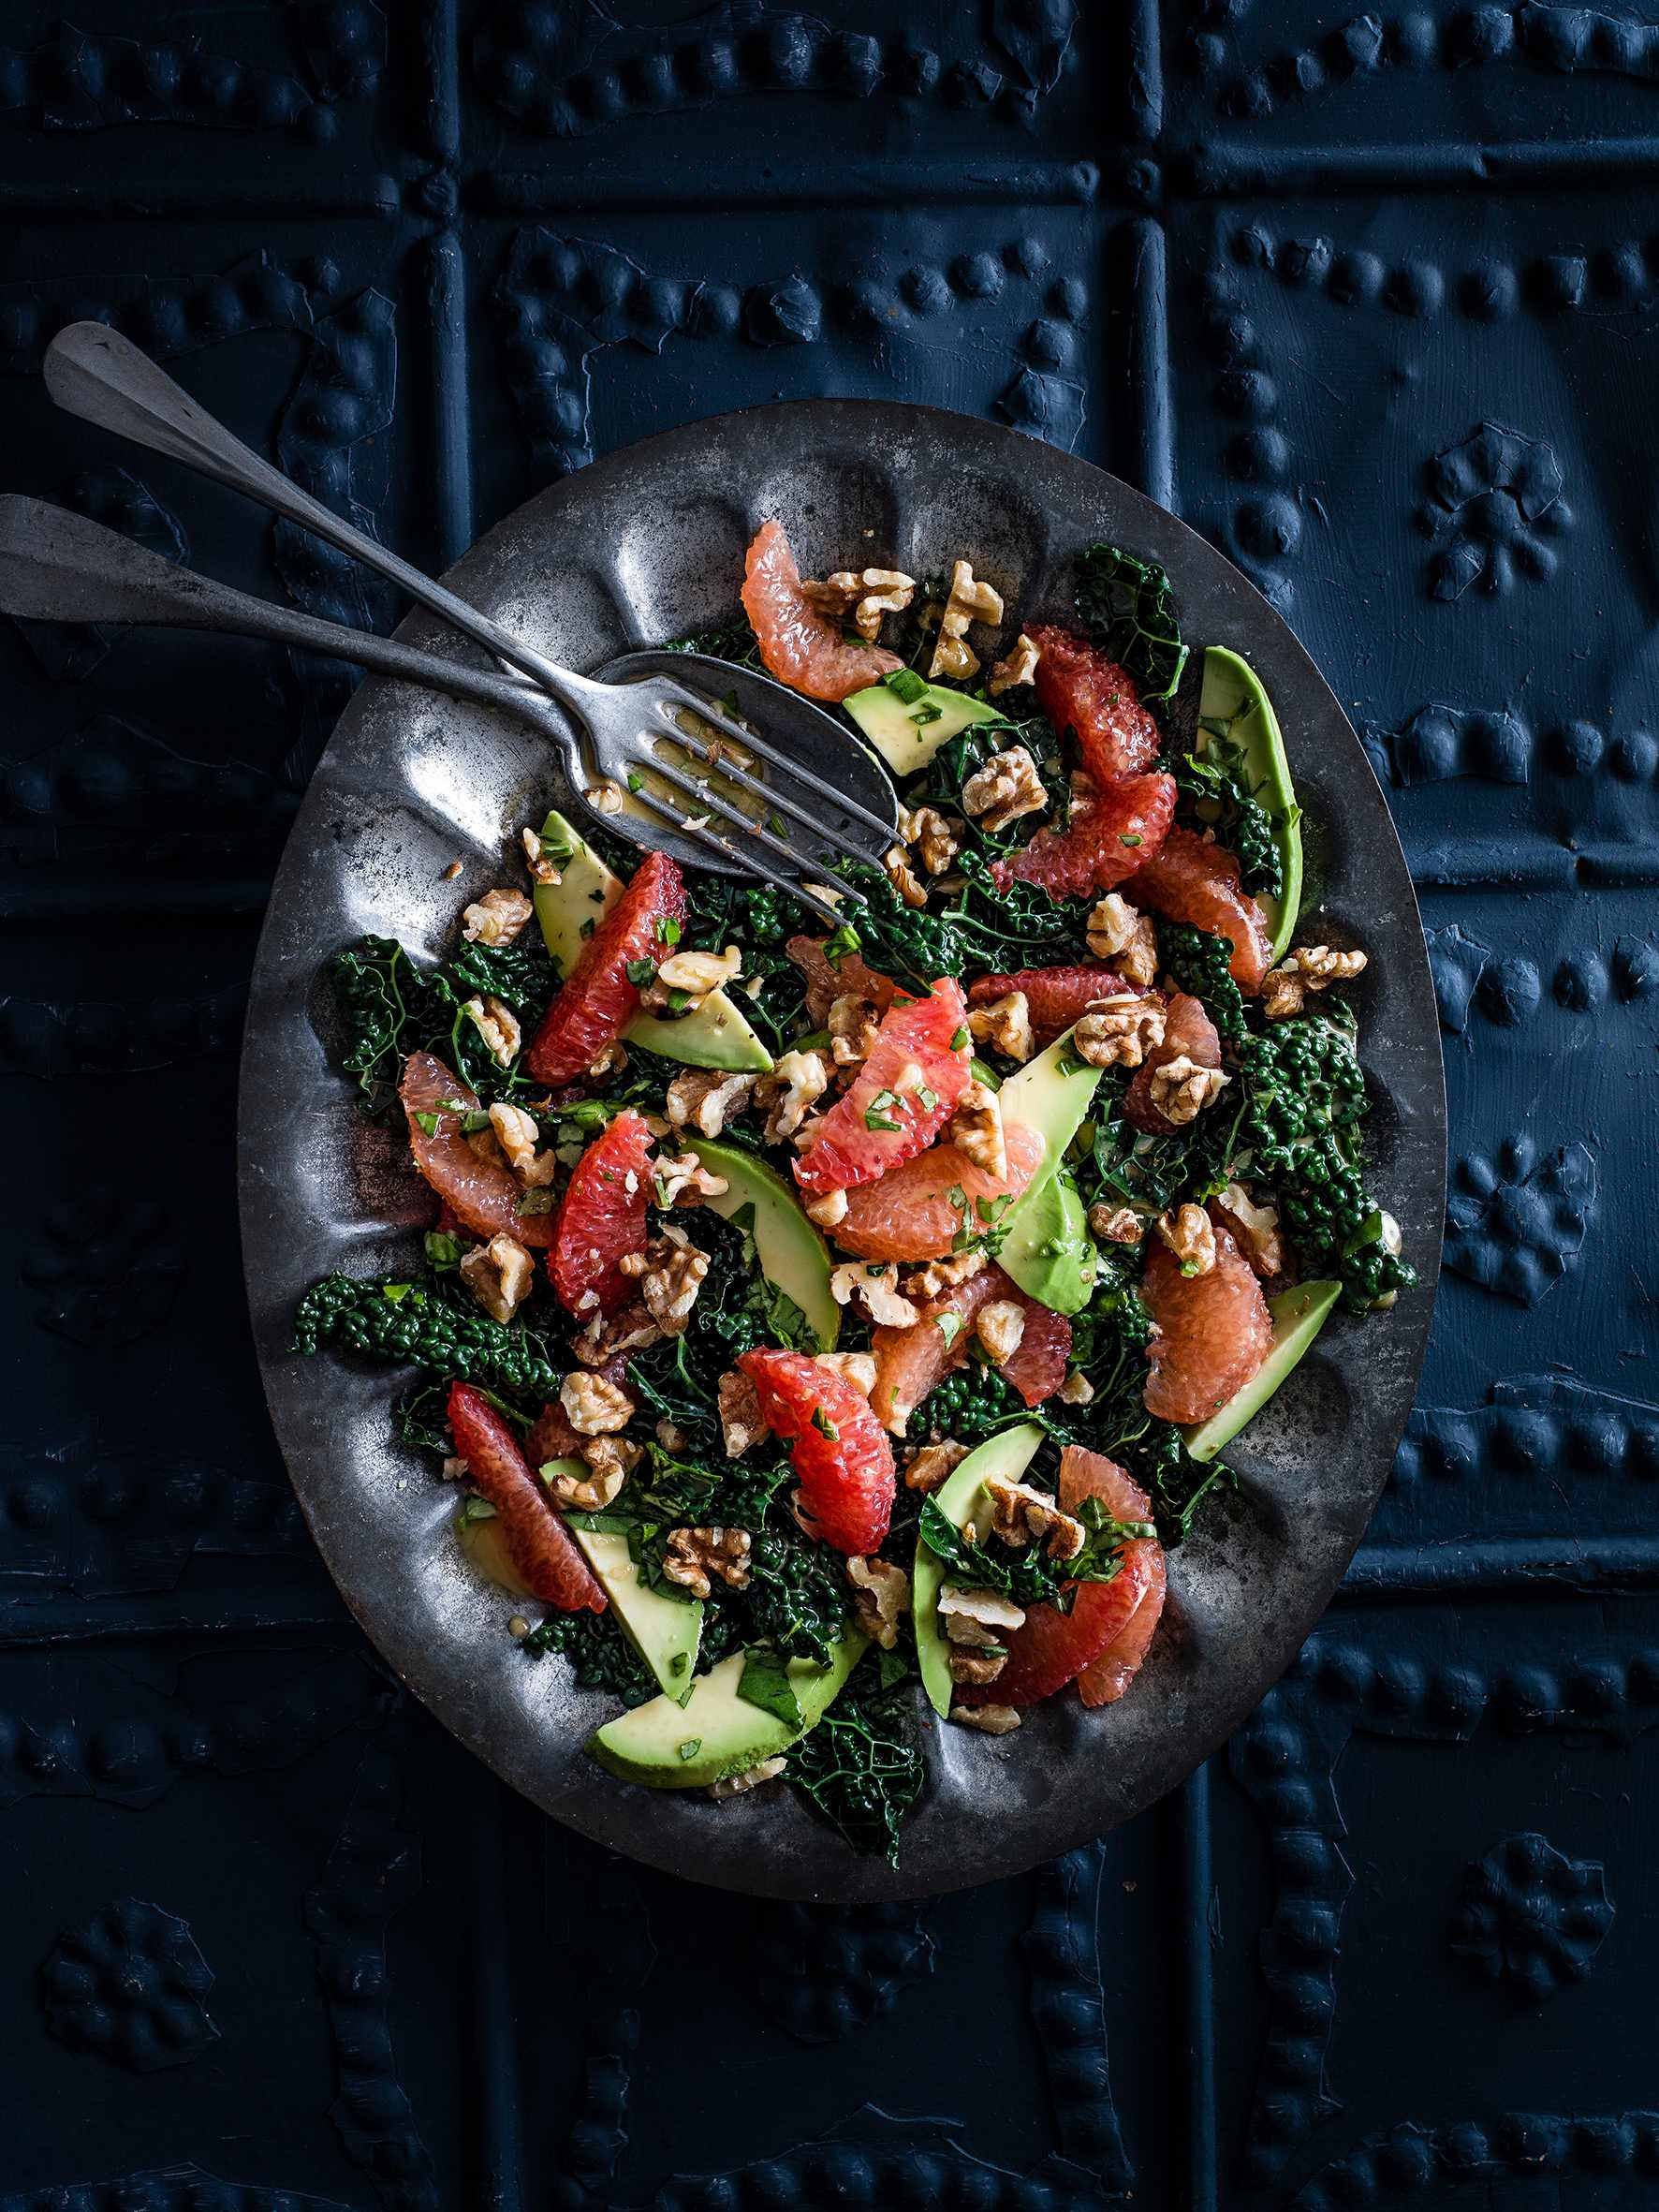 Cavolo nero, pink grapefruit, avocado and walnut salad